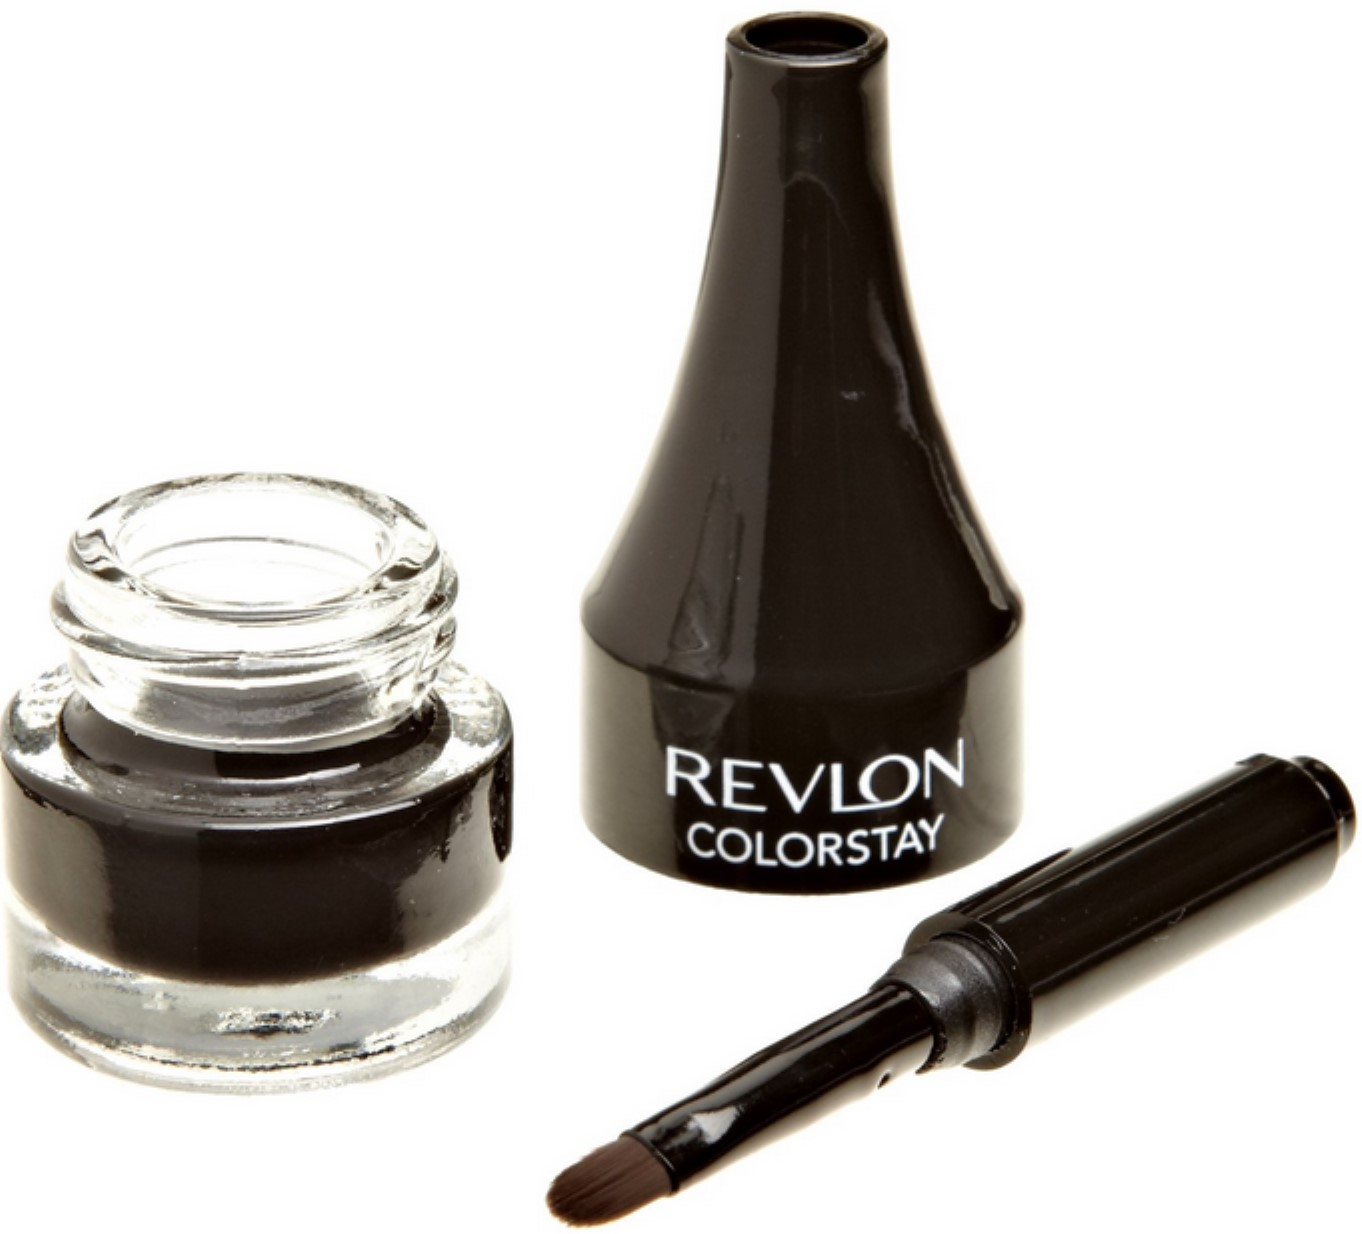 Revlon ColorStay Liner Creme Gel Eye Liner, Black [001], 0.08 oz (Pack of 2)